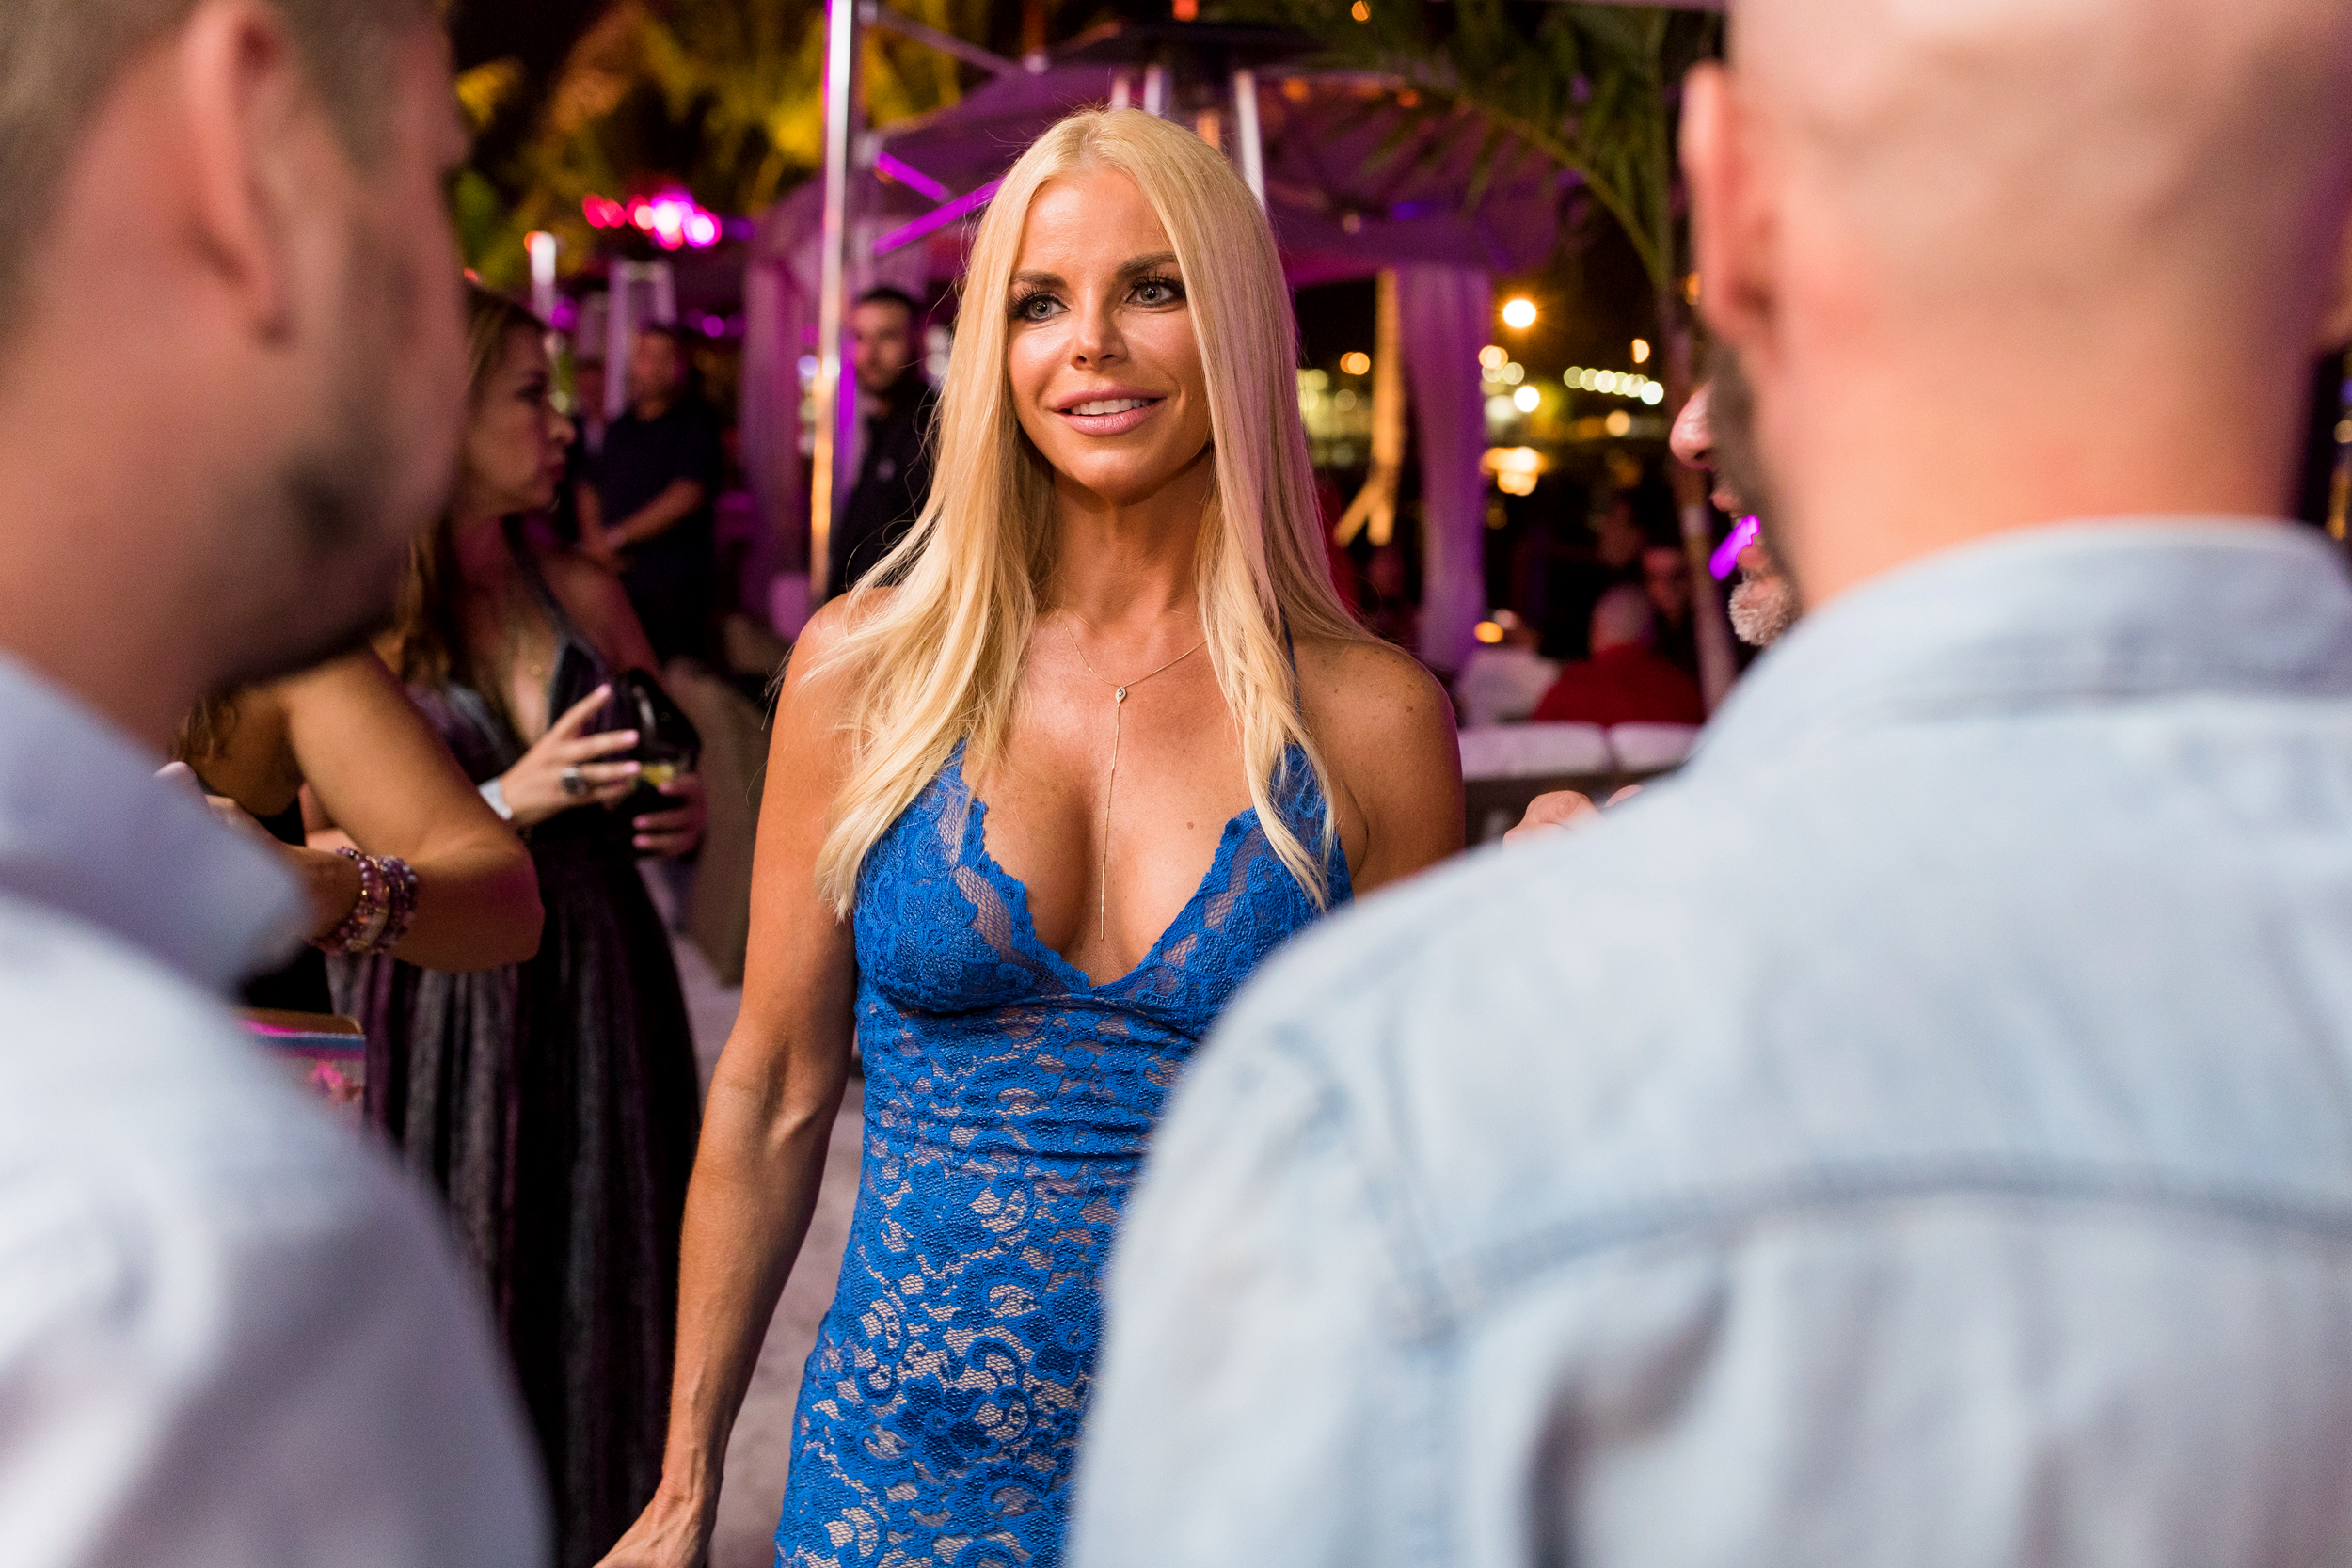 'Real Housewives of Miami' star's mother dies of Covid on planned wedding date